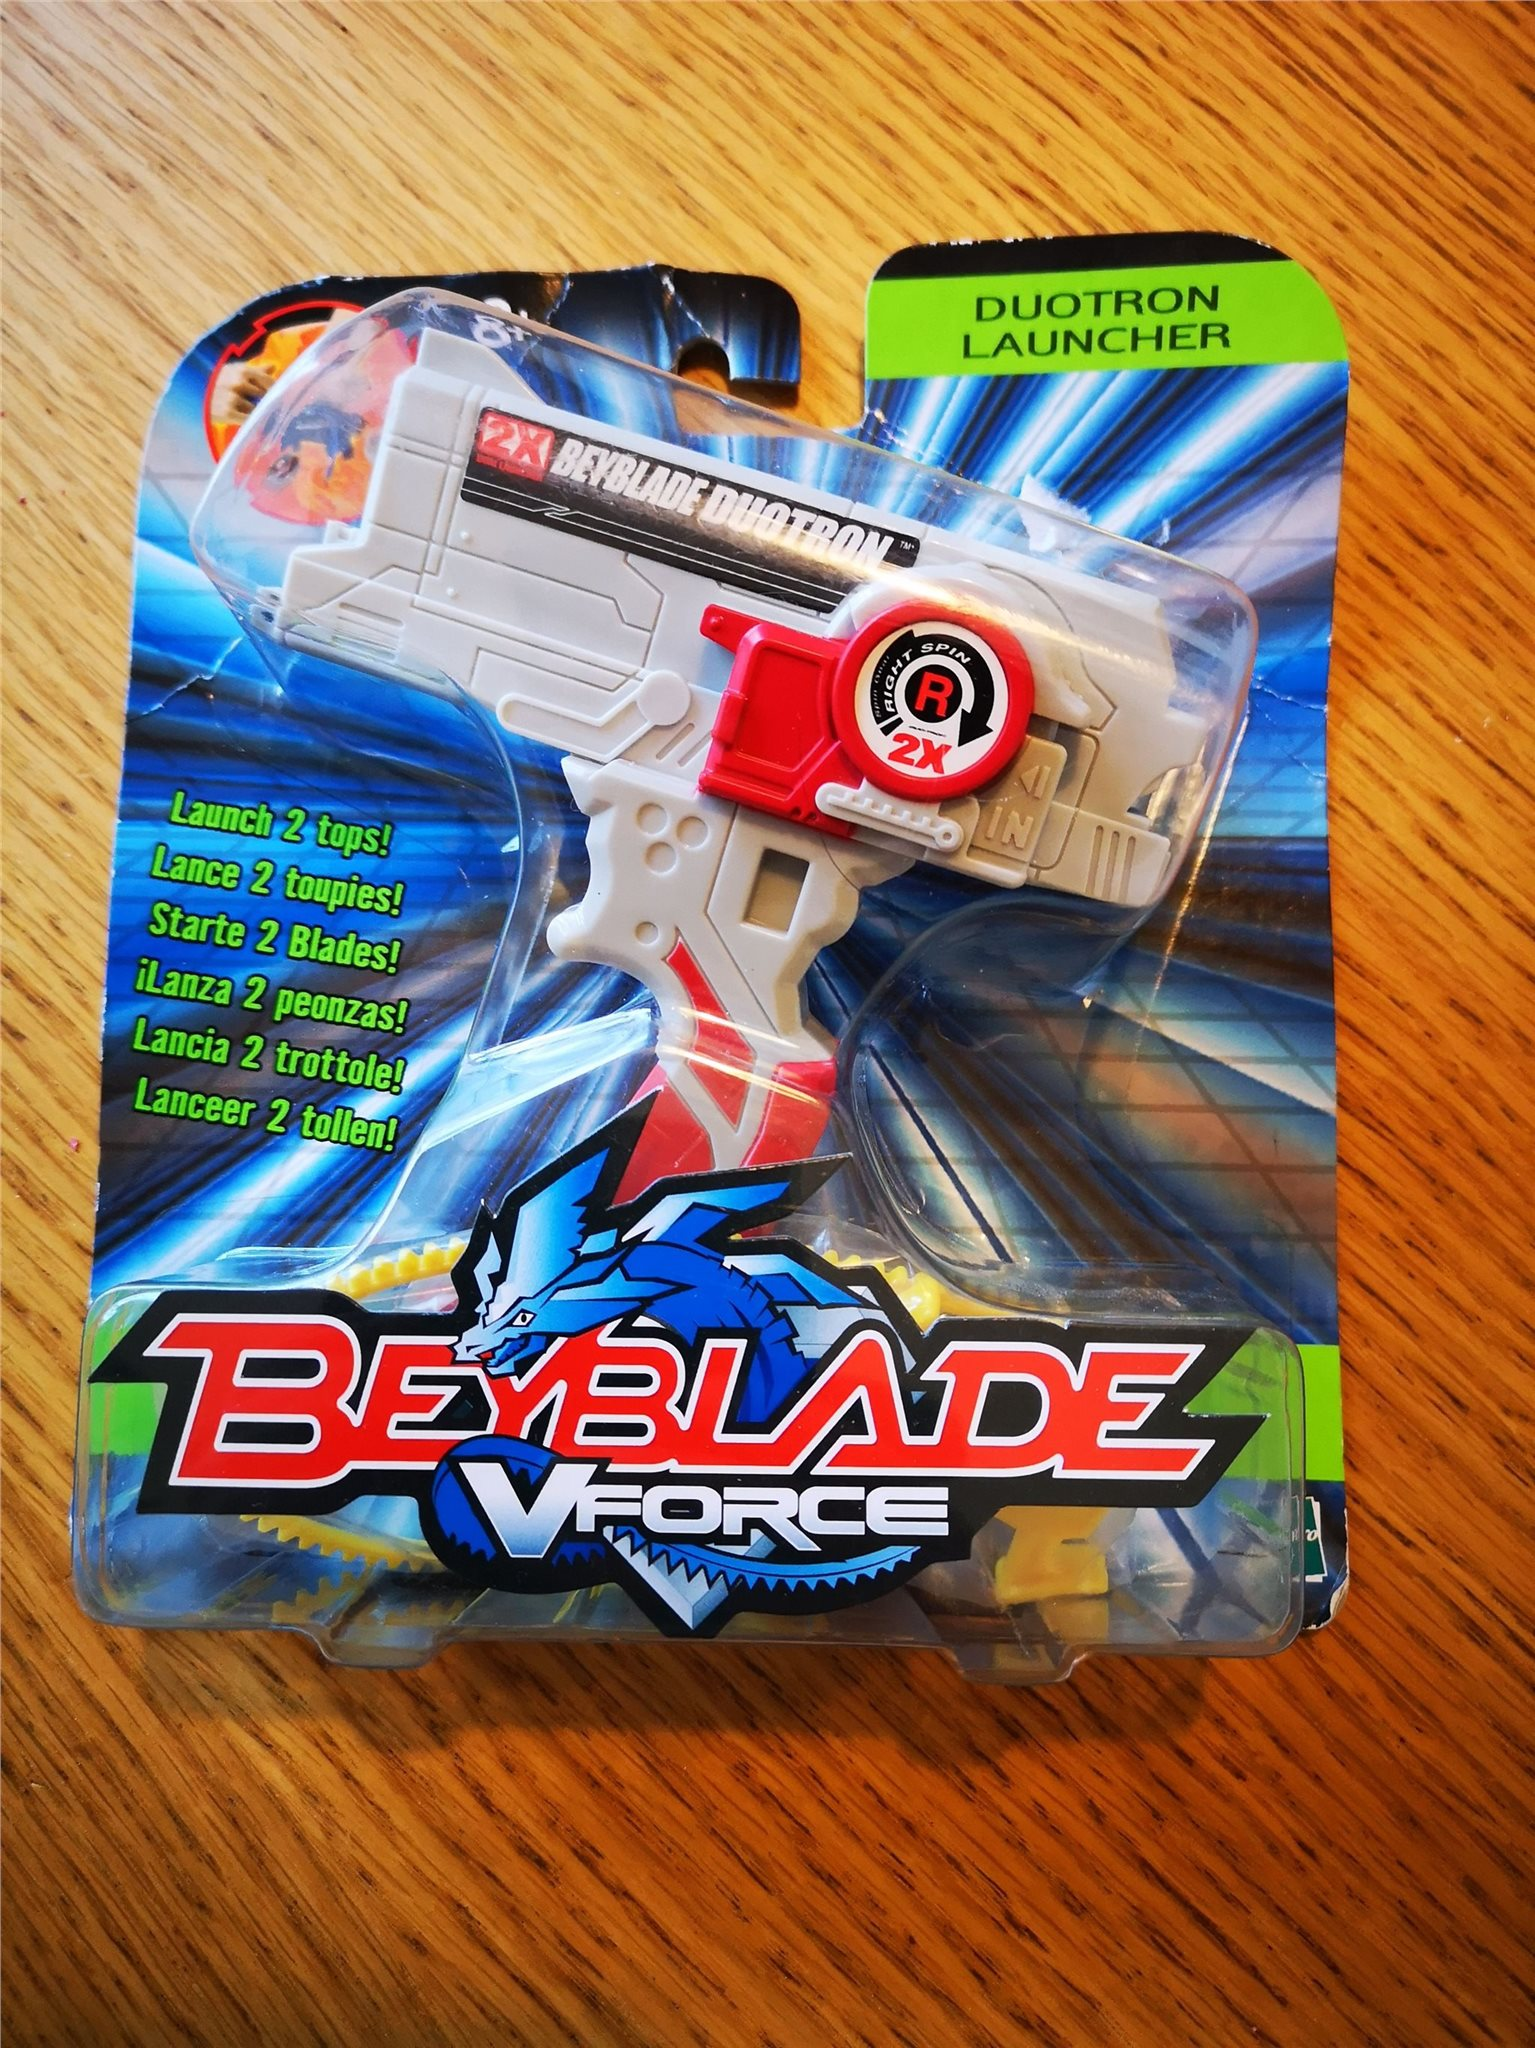 Beyblade V FORCE DUOTRON LAUNCHER